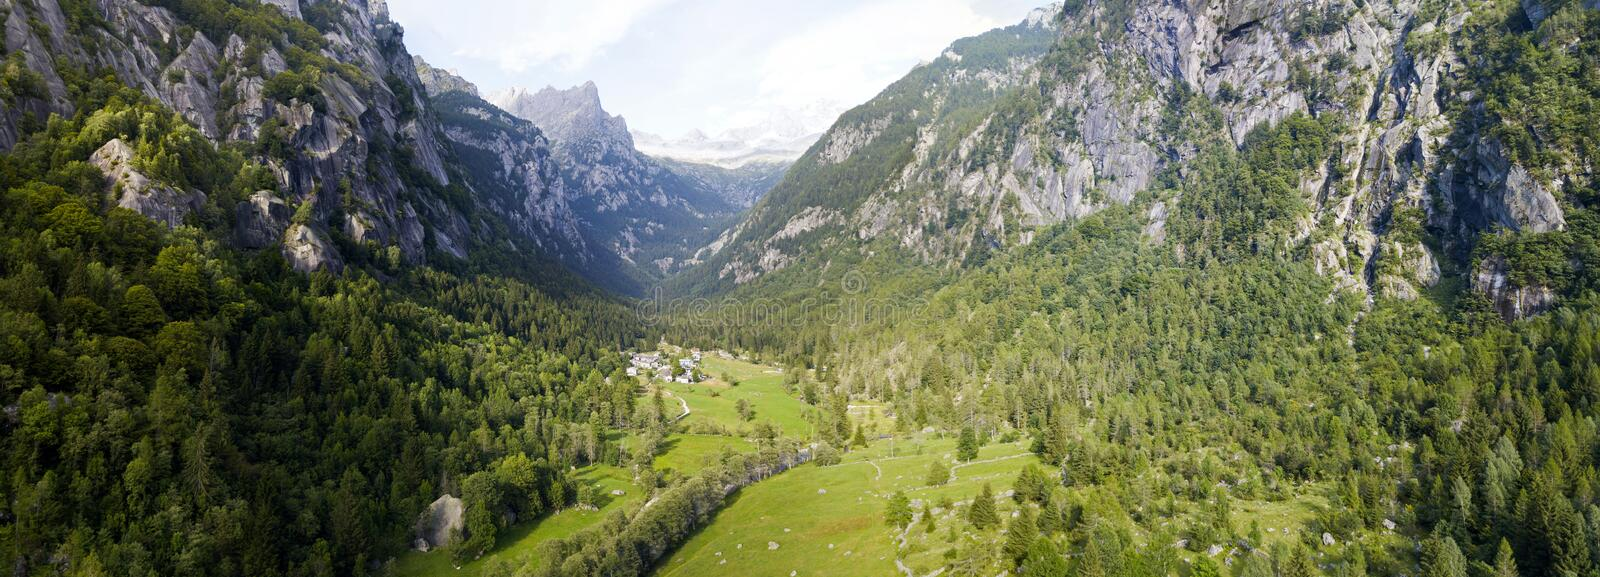 Aerial view of the Mello Valley, a valley surrounded by granite mountains and forest trees, renamed the little italian Yosemite stock photos